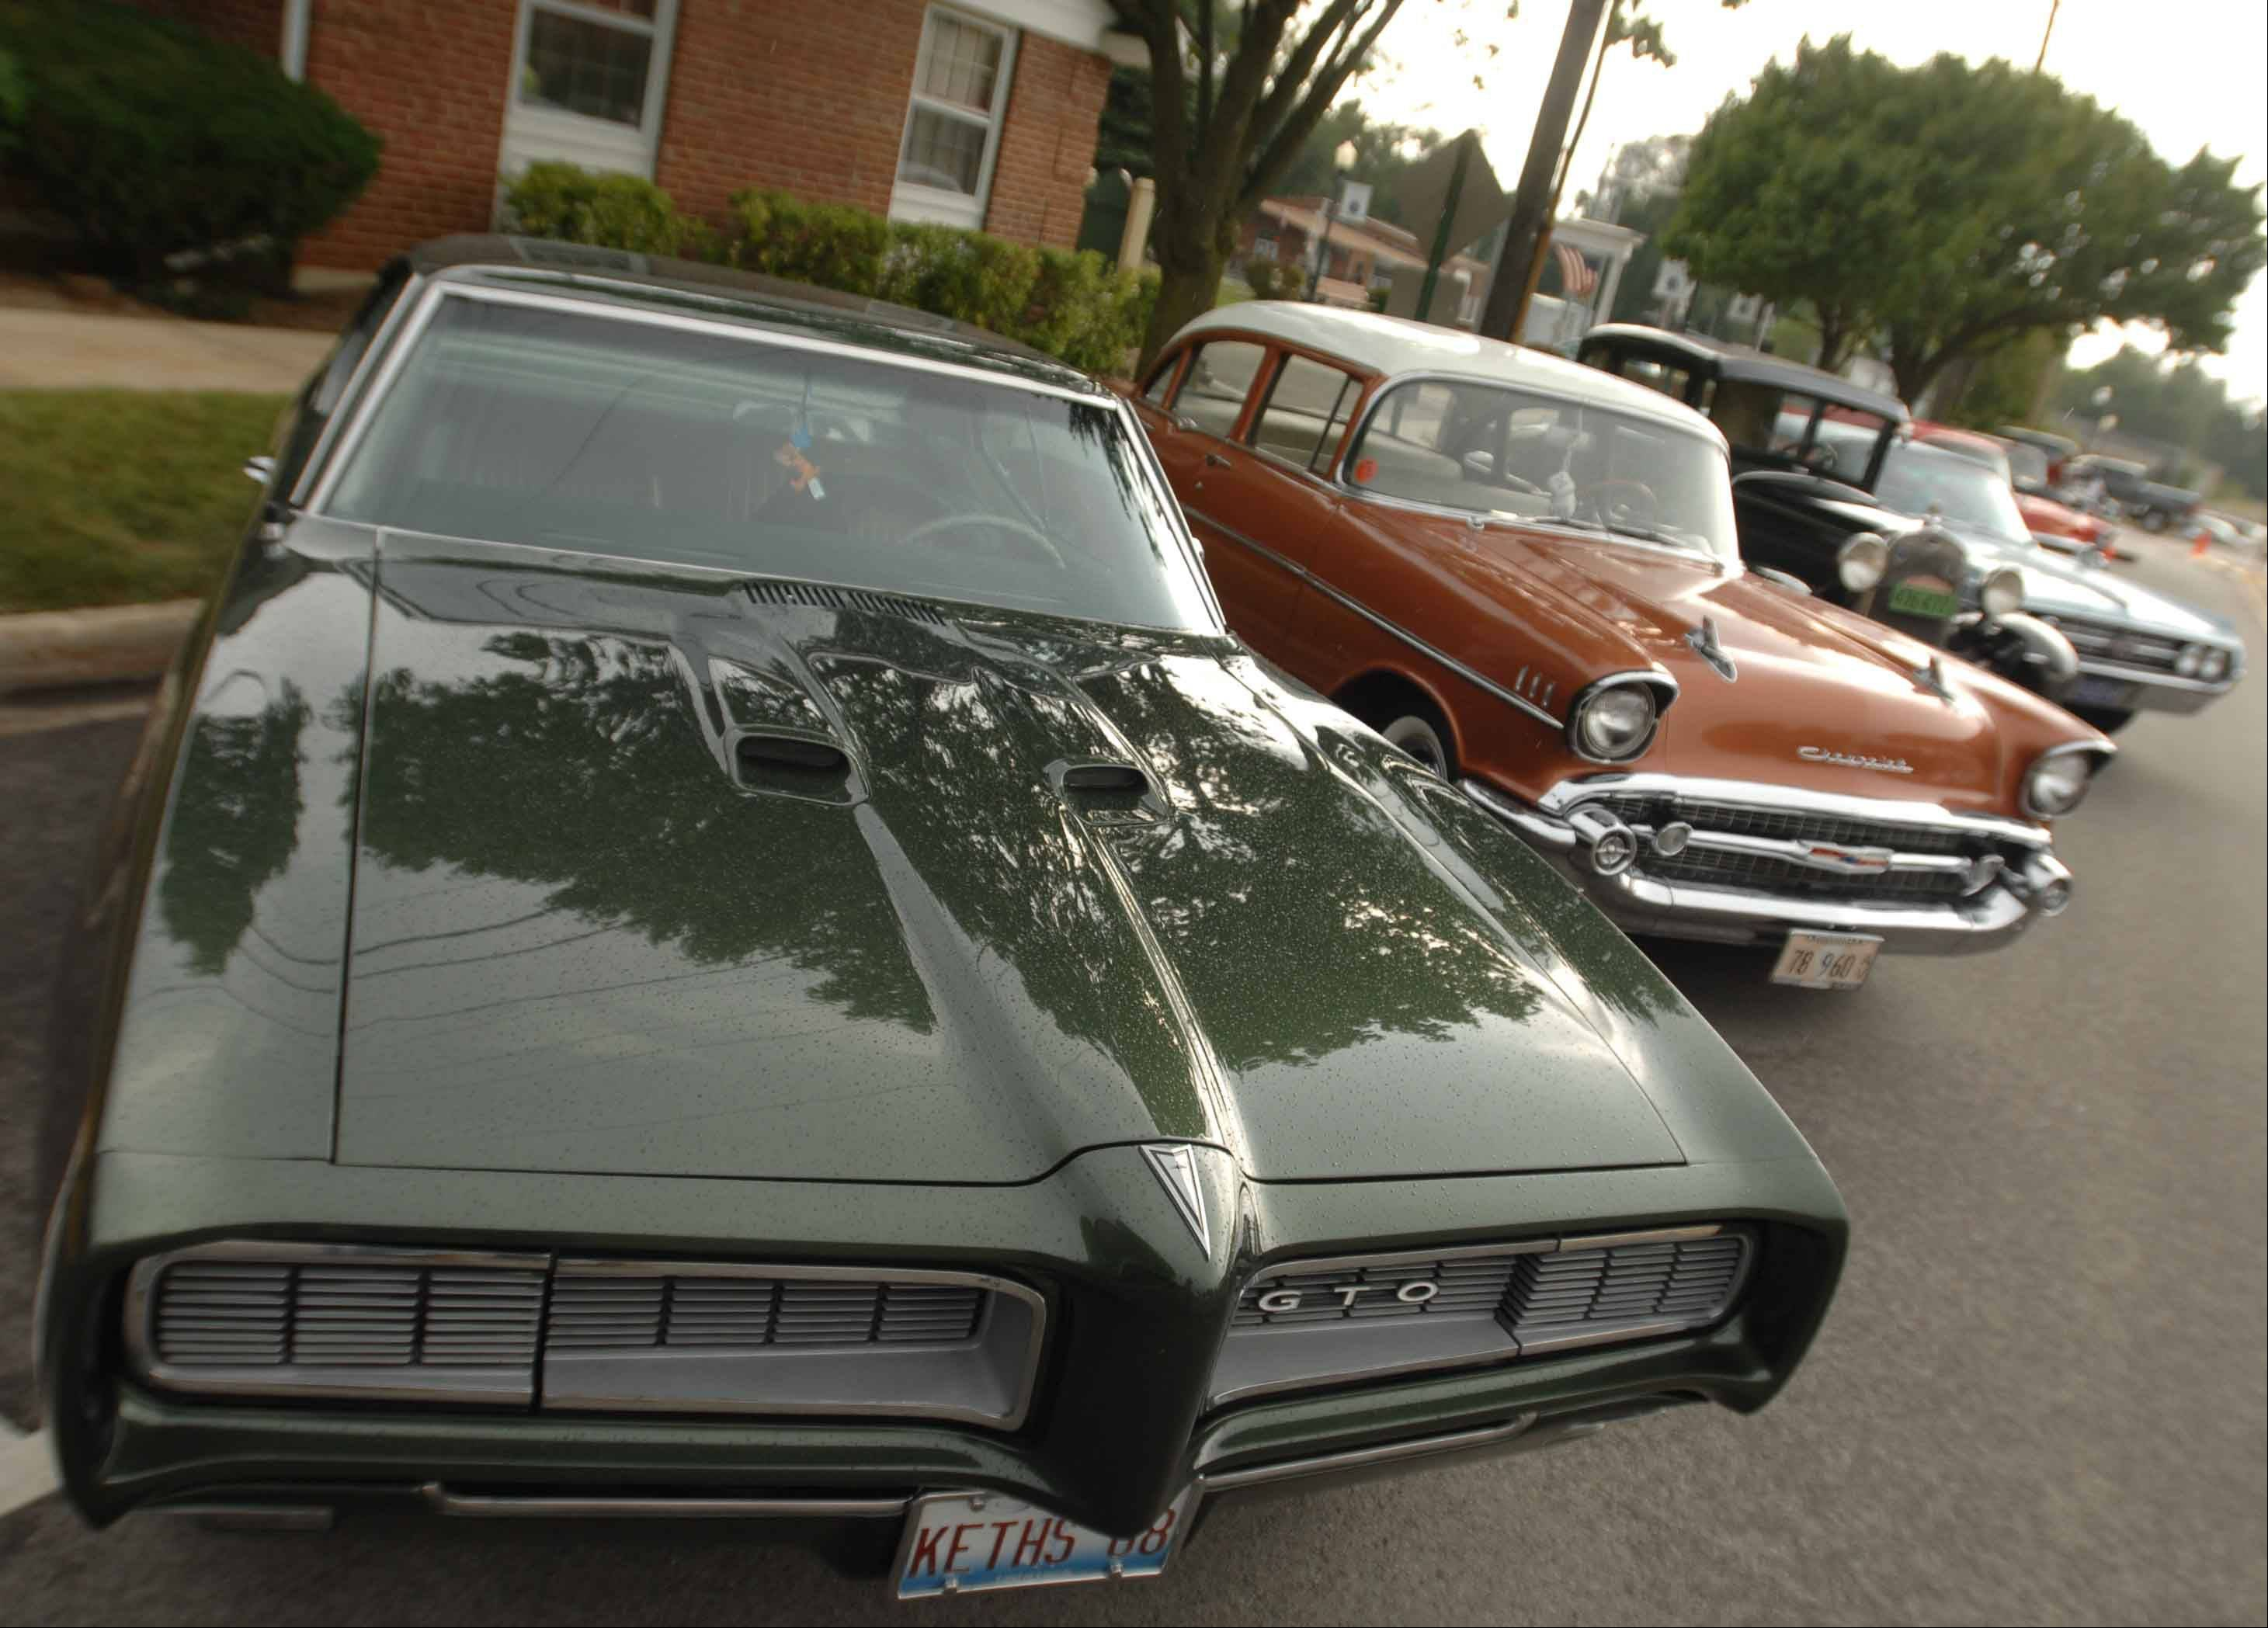 The last Cruzin Winfield car show of the year is scheduled for 5 to 8:30 p.m. Friday during the second night of Winfield's Good Old Days festival.